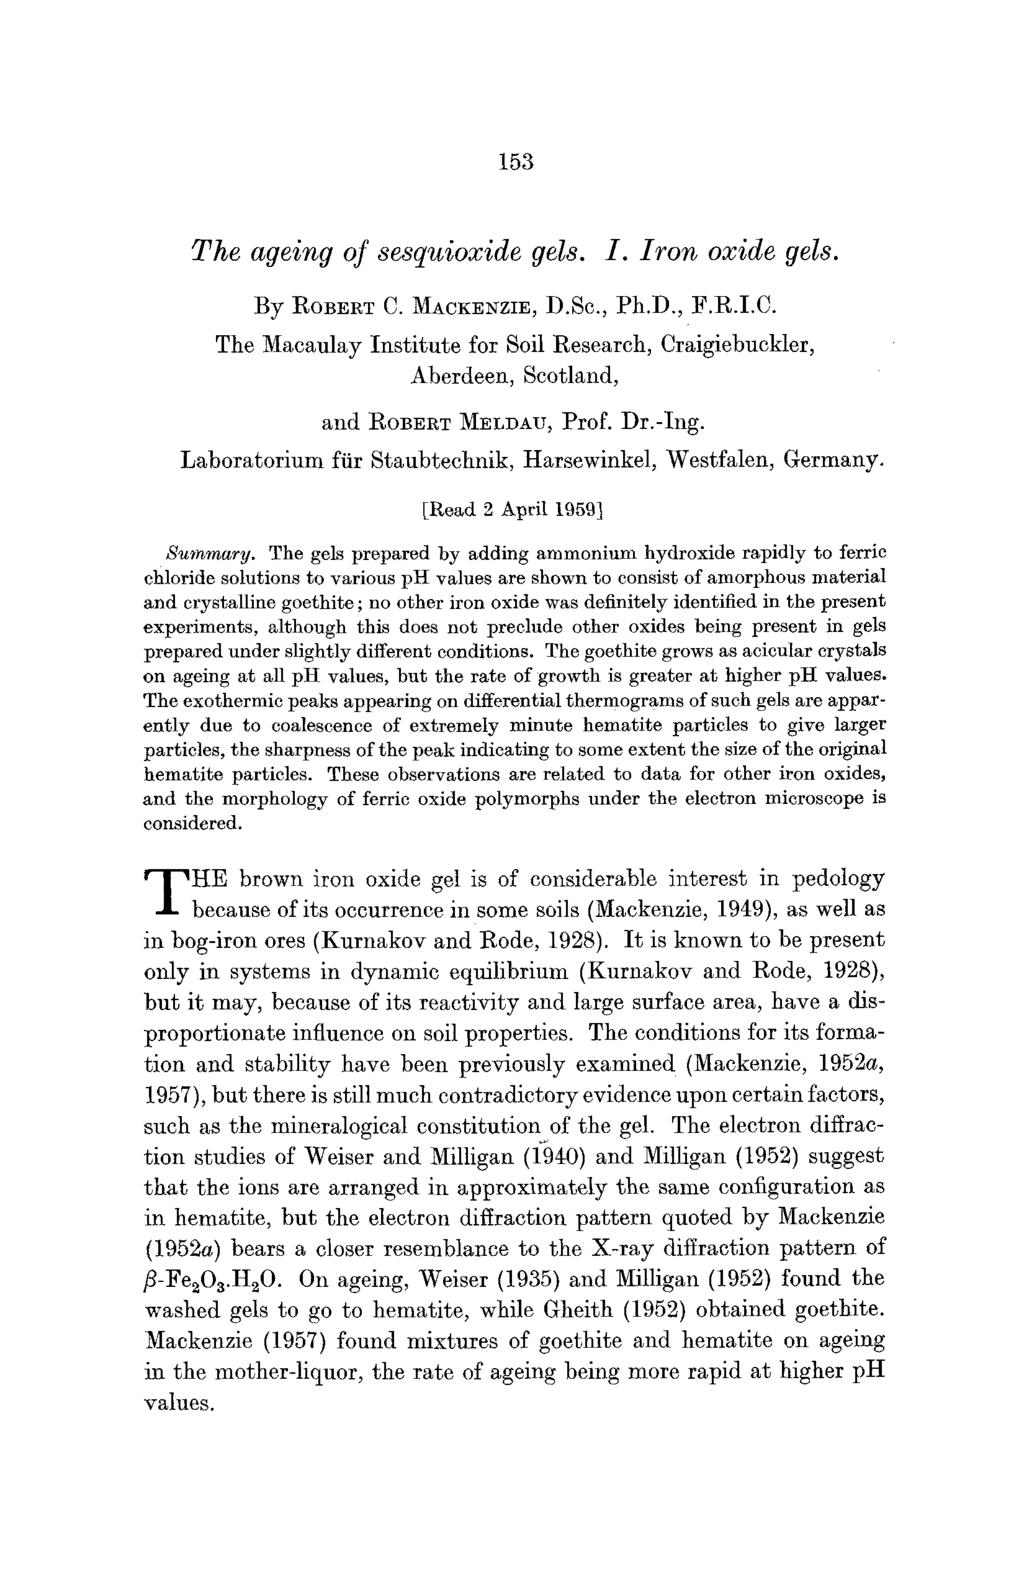 153 The ageing of sesquioxide gels. I. Iron oxide gels. By ROBERT C. MACKENZIE, D.Sc., Ph.D., F.R.I.C. The Macaulay Institute for Soil Research, Craigiebuckler, Aberdeen, Scotland, and ROBERT MELDAU, Prof.